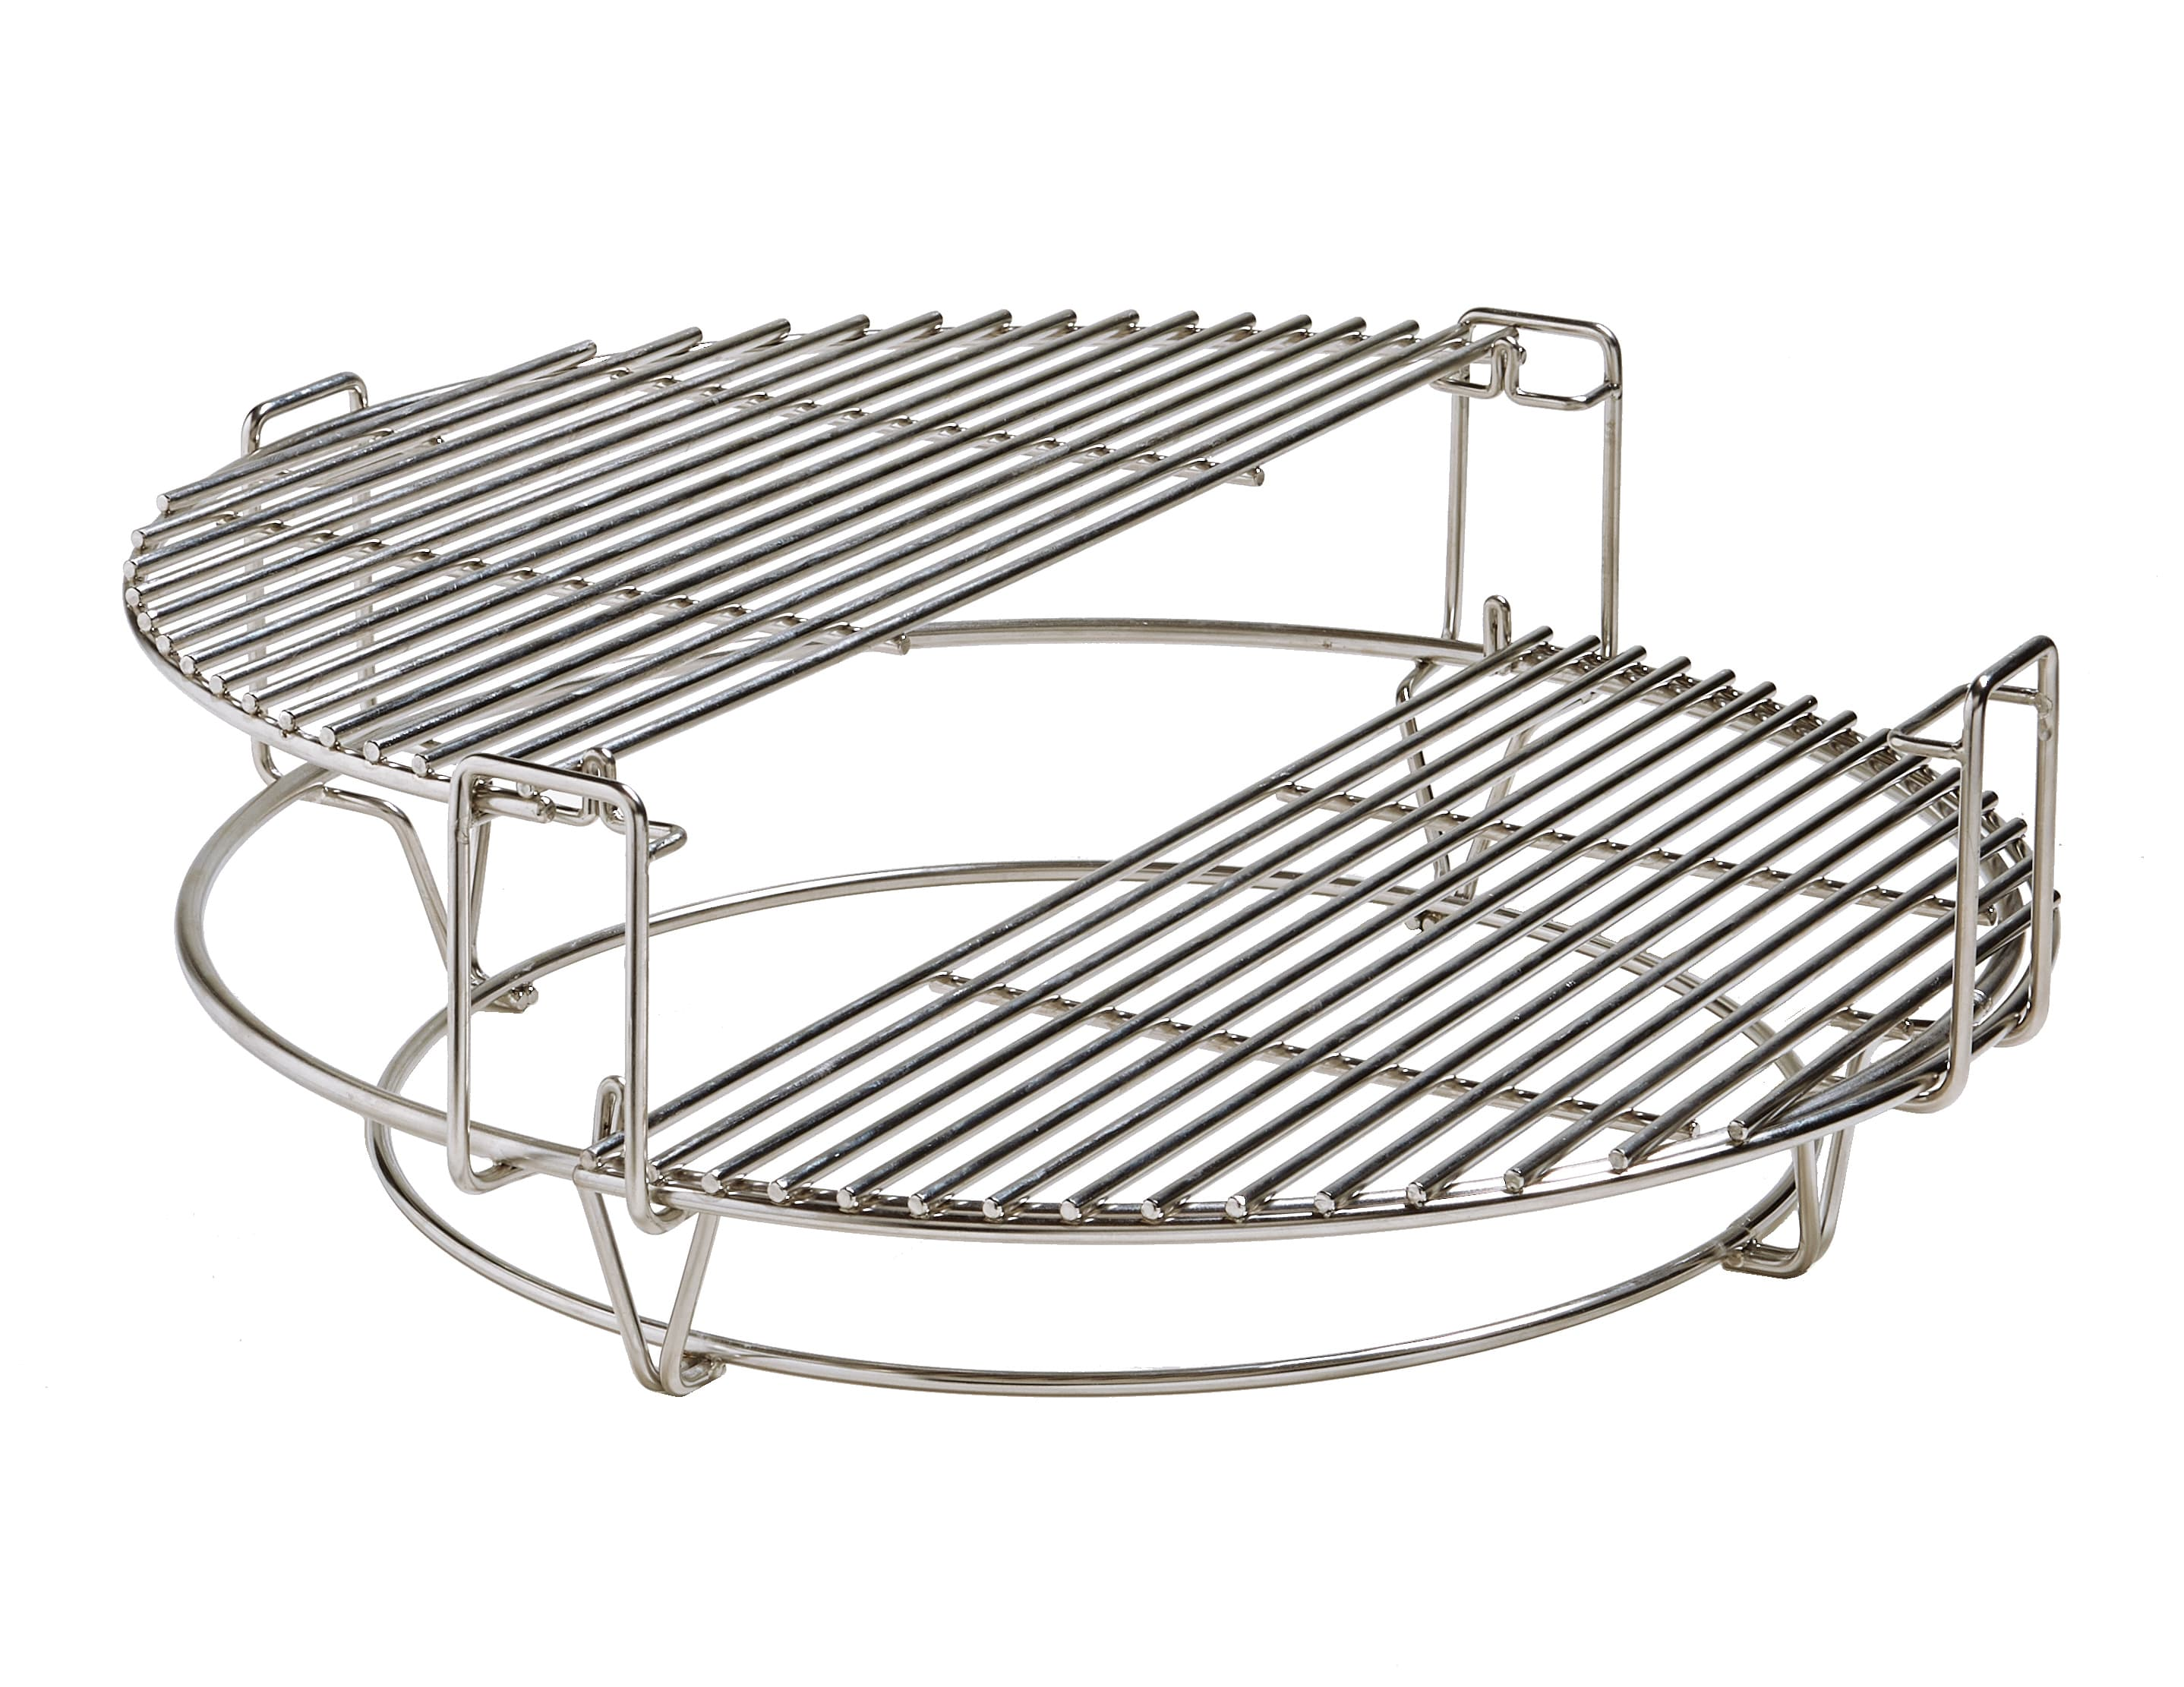 2-Tier Divide & Conquer grill